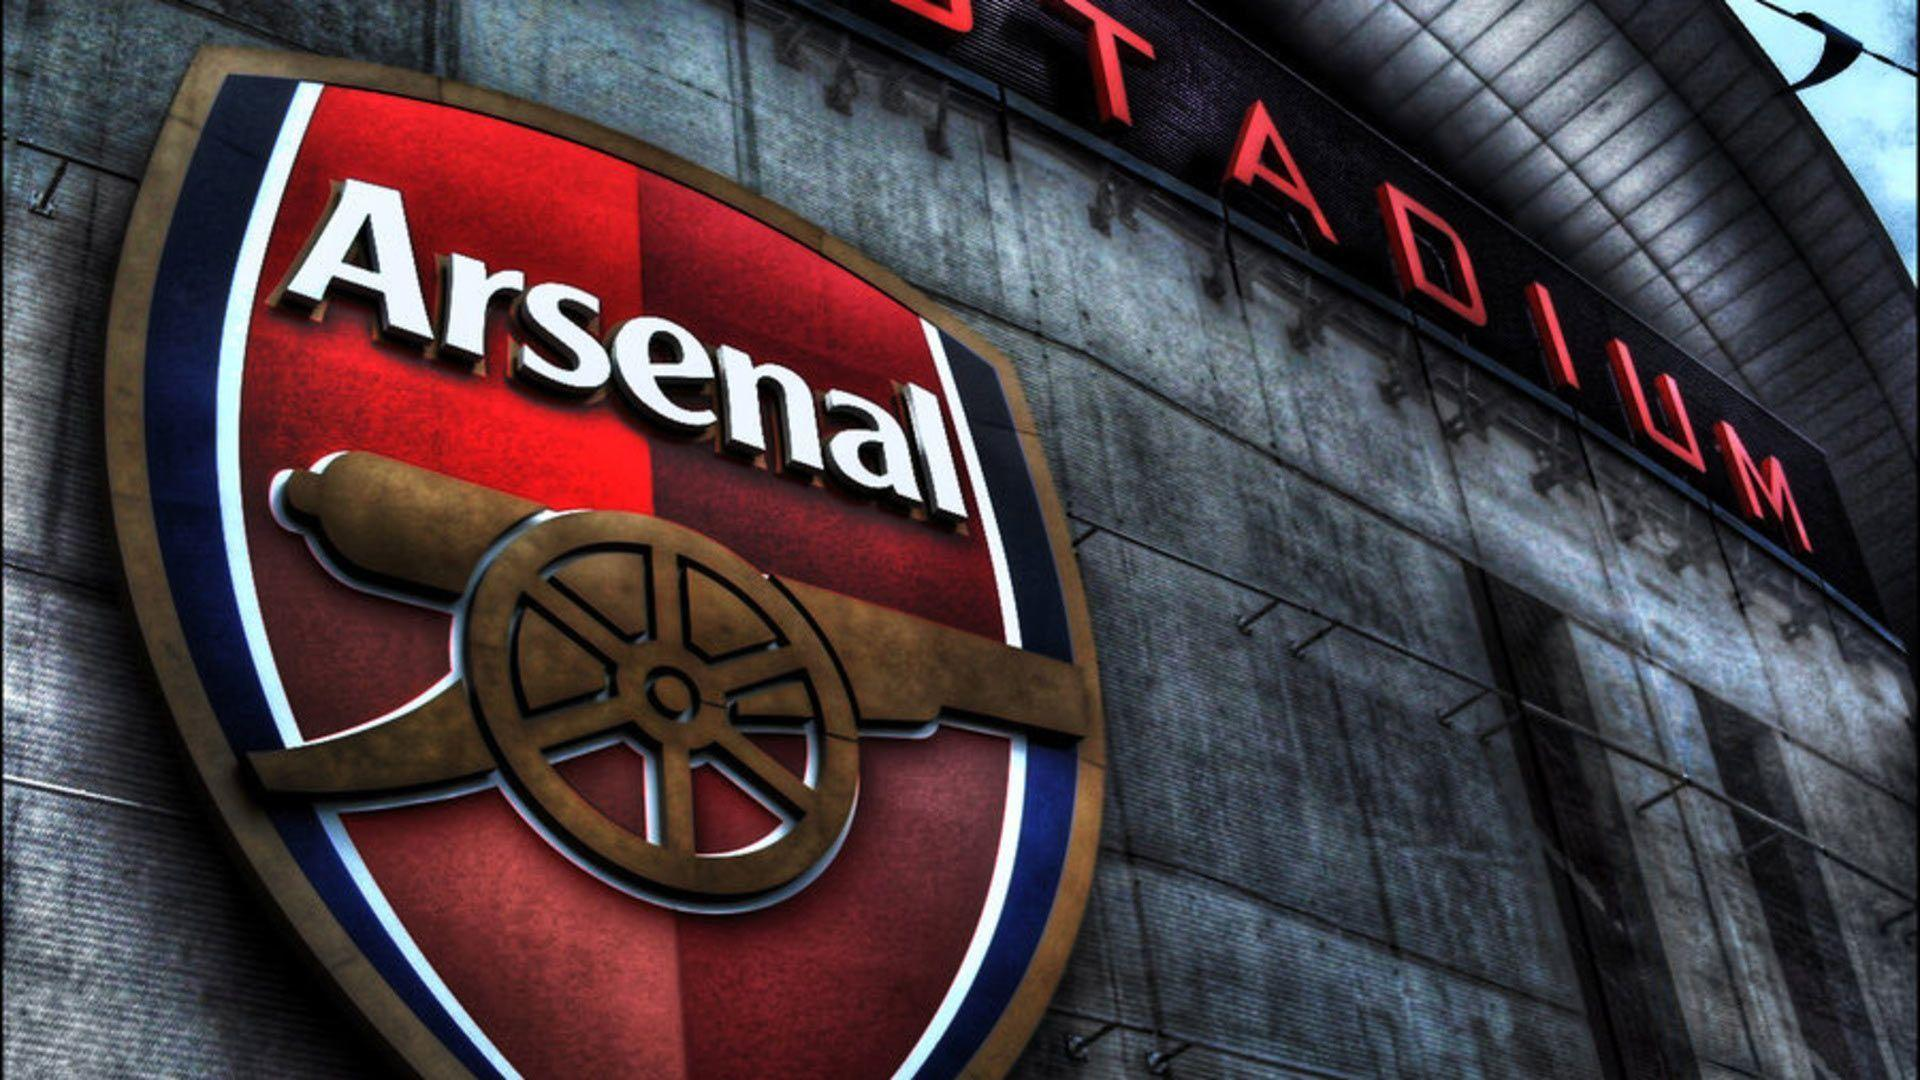 Arsenal FC | HD Wallpapers